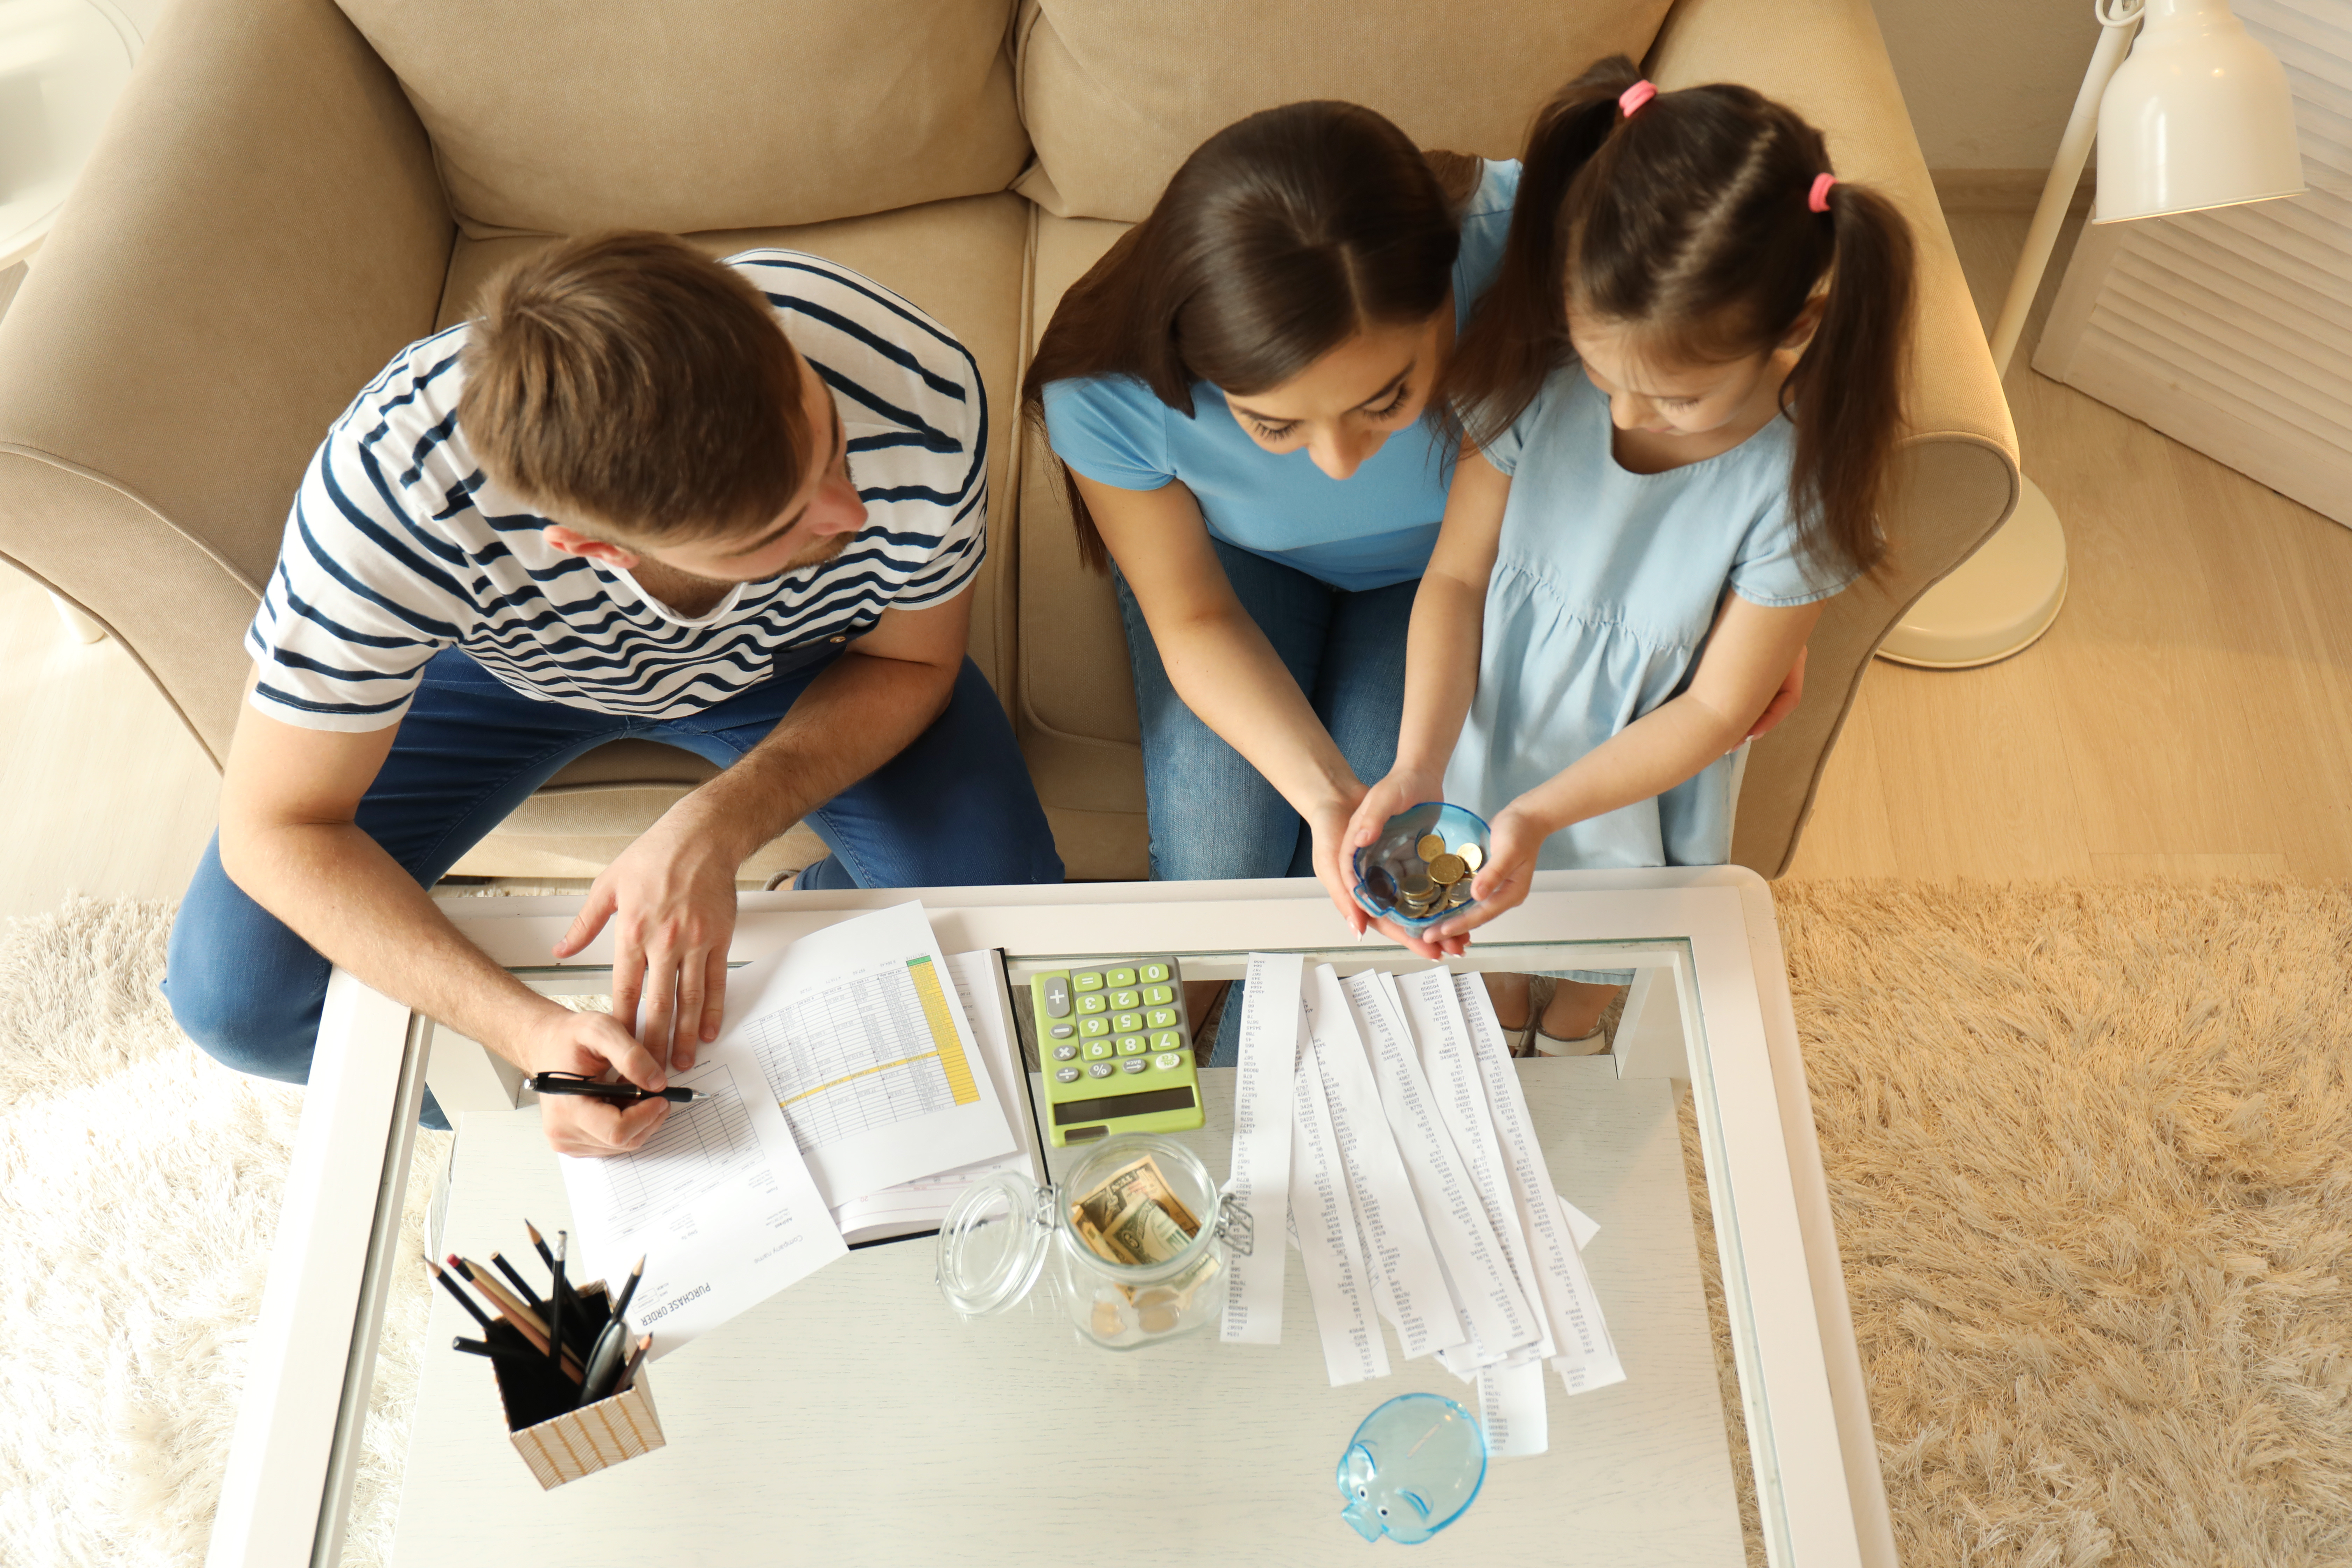 Family paying bills together, using a calculator and counting money in living room.